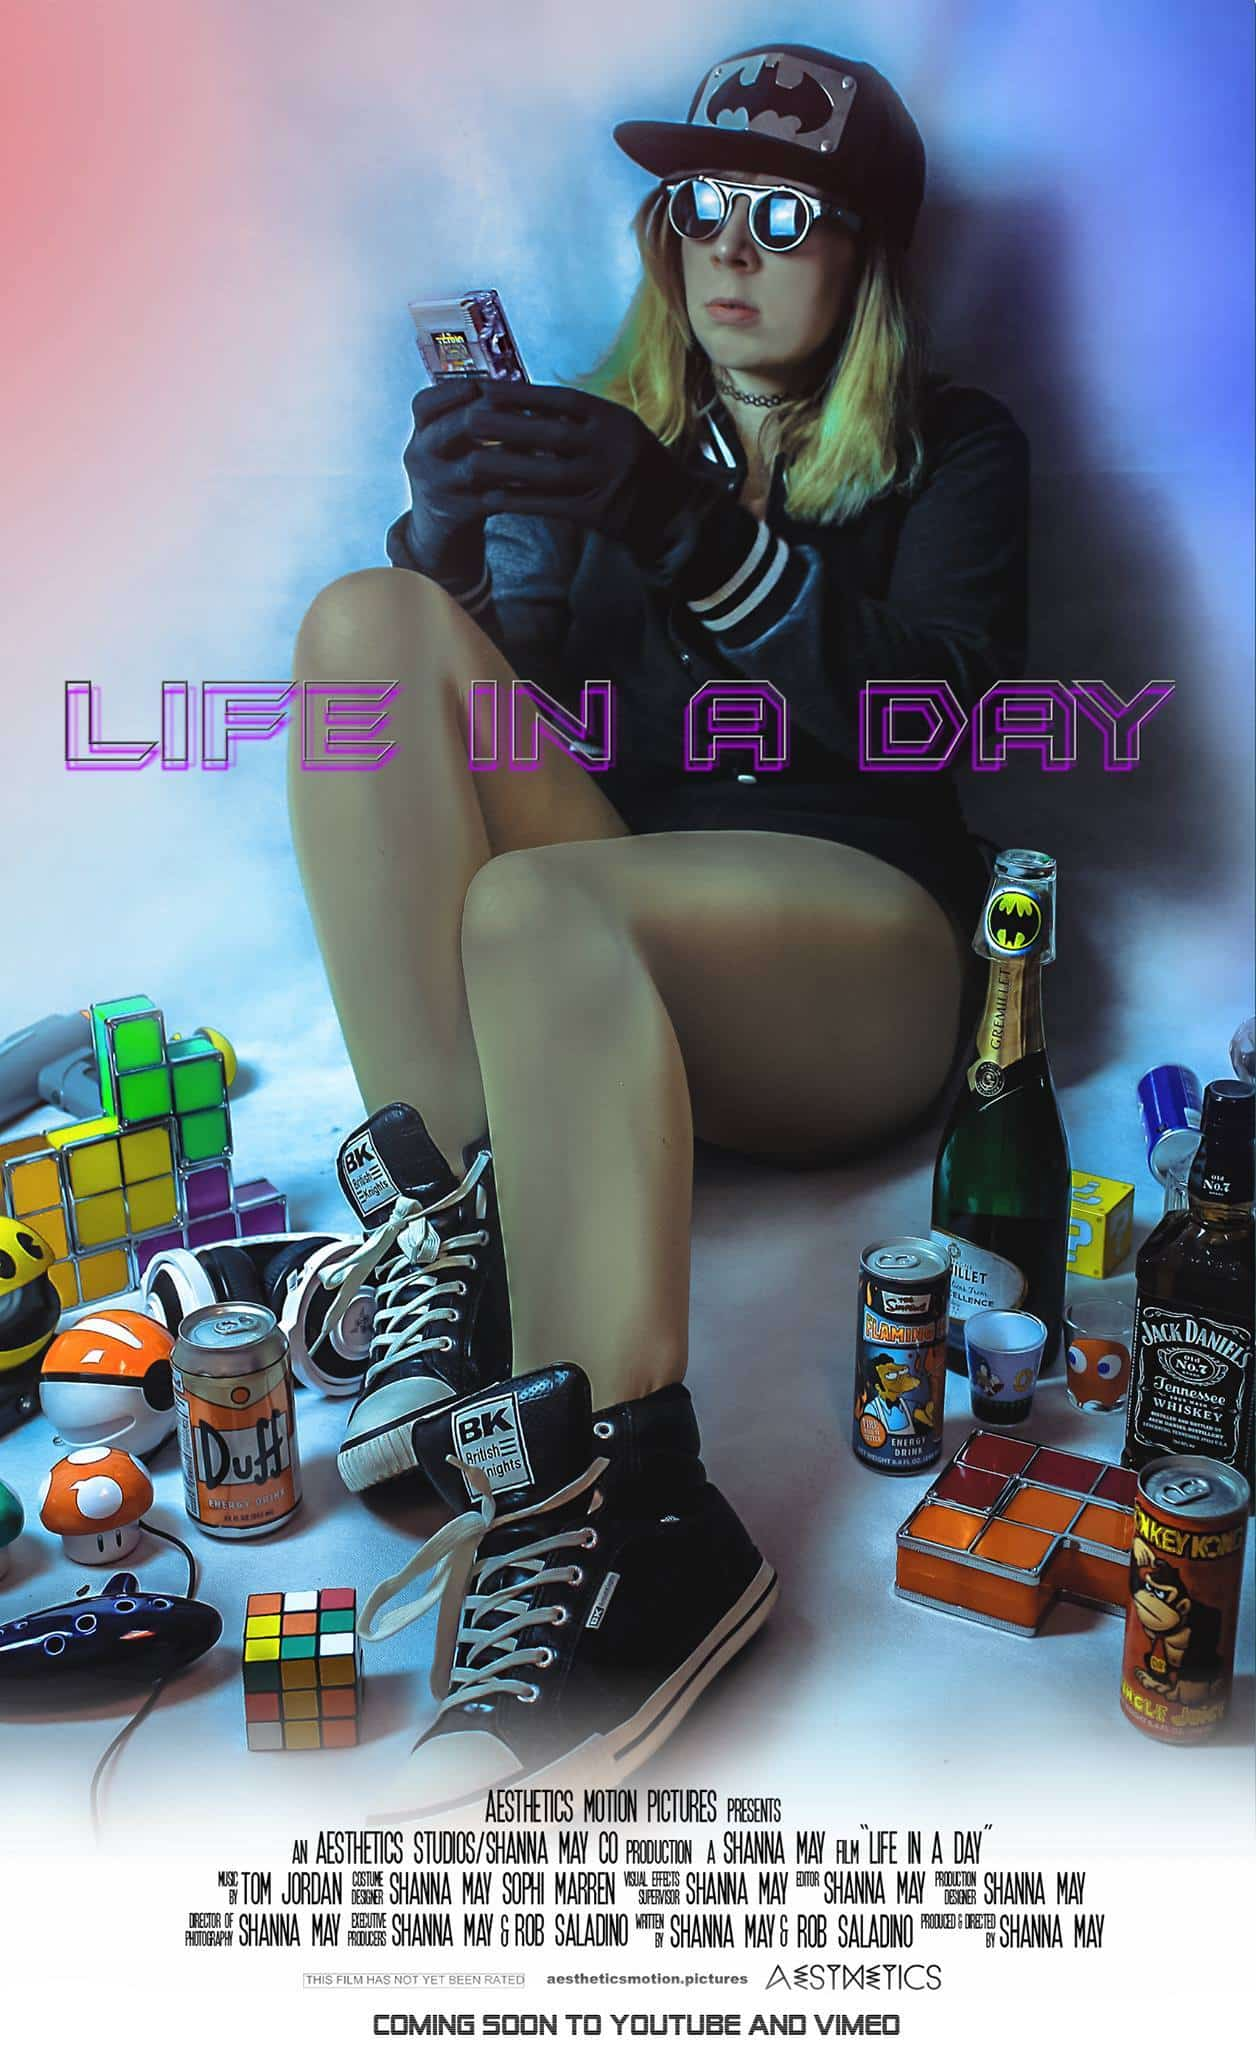 aesthetics motion pictures shanna may director life in a day documentary